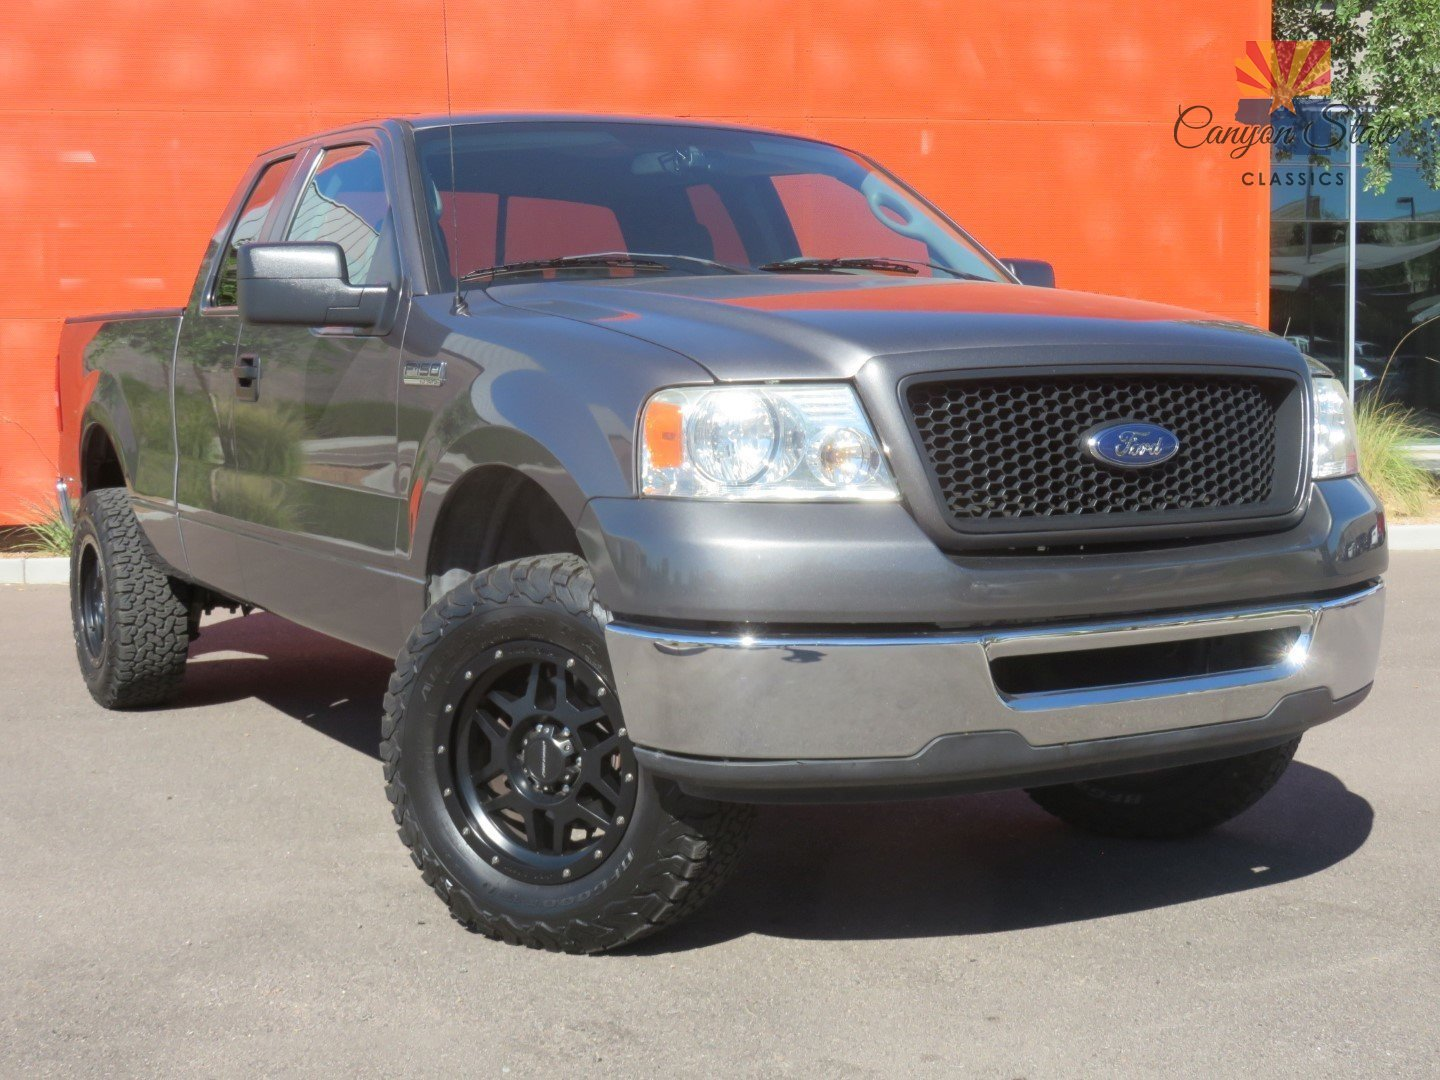 2006 Ford F 150 Canyon State Classics Xlt Wheels